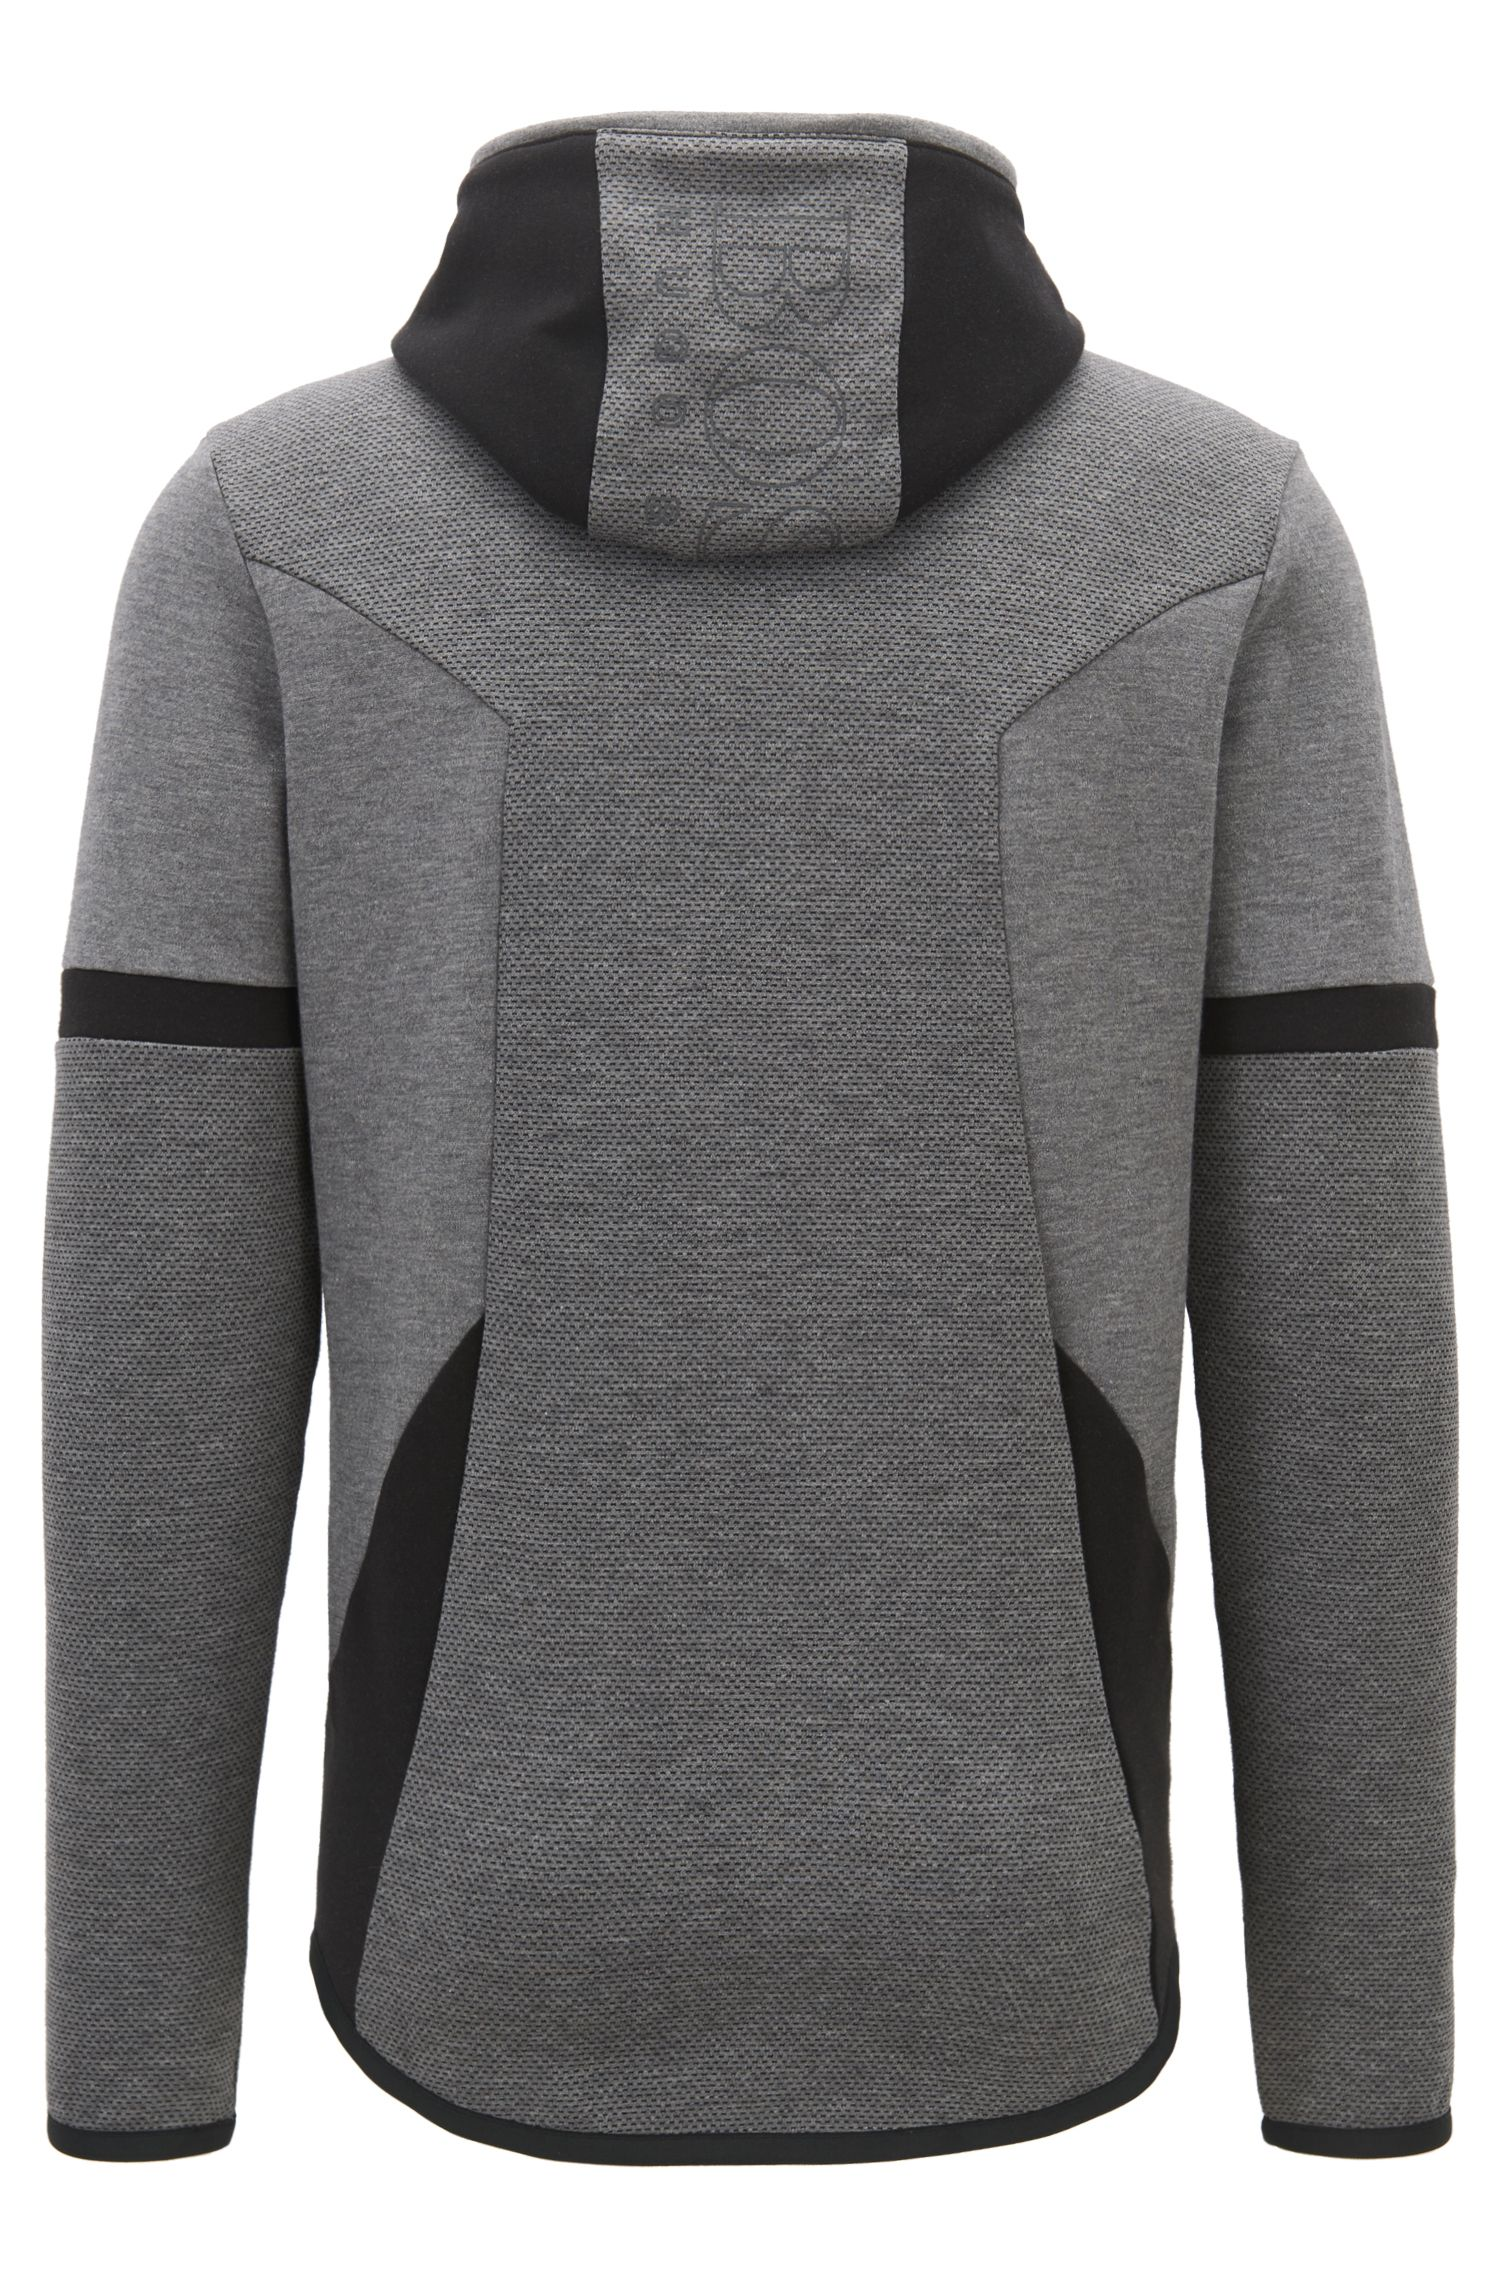 Hooded sweatshirt with two-way zip and contrast details